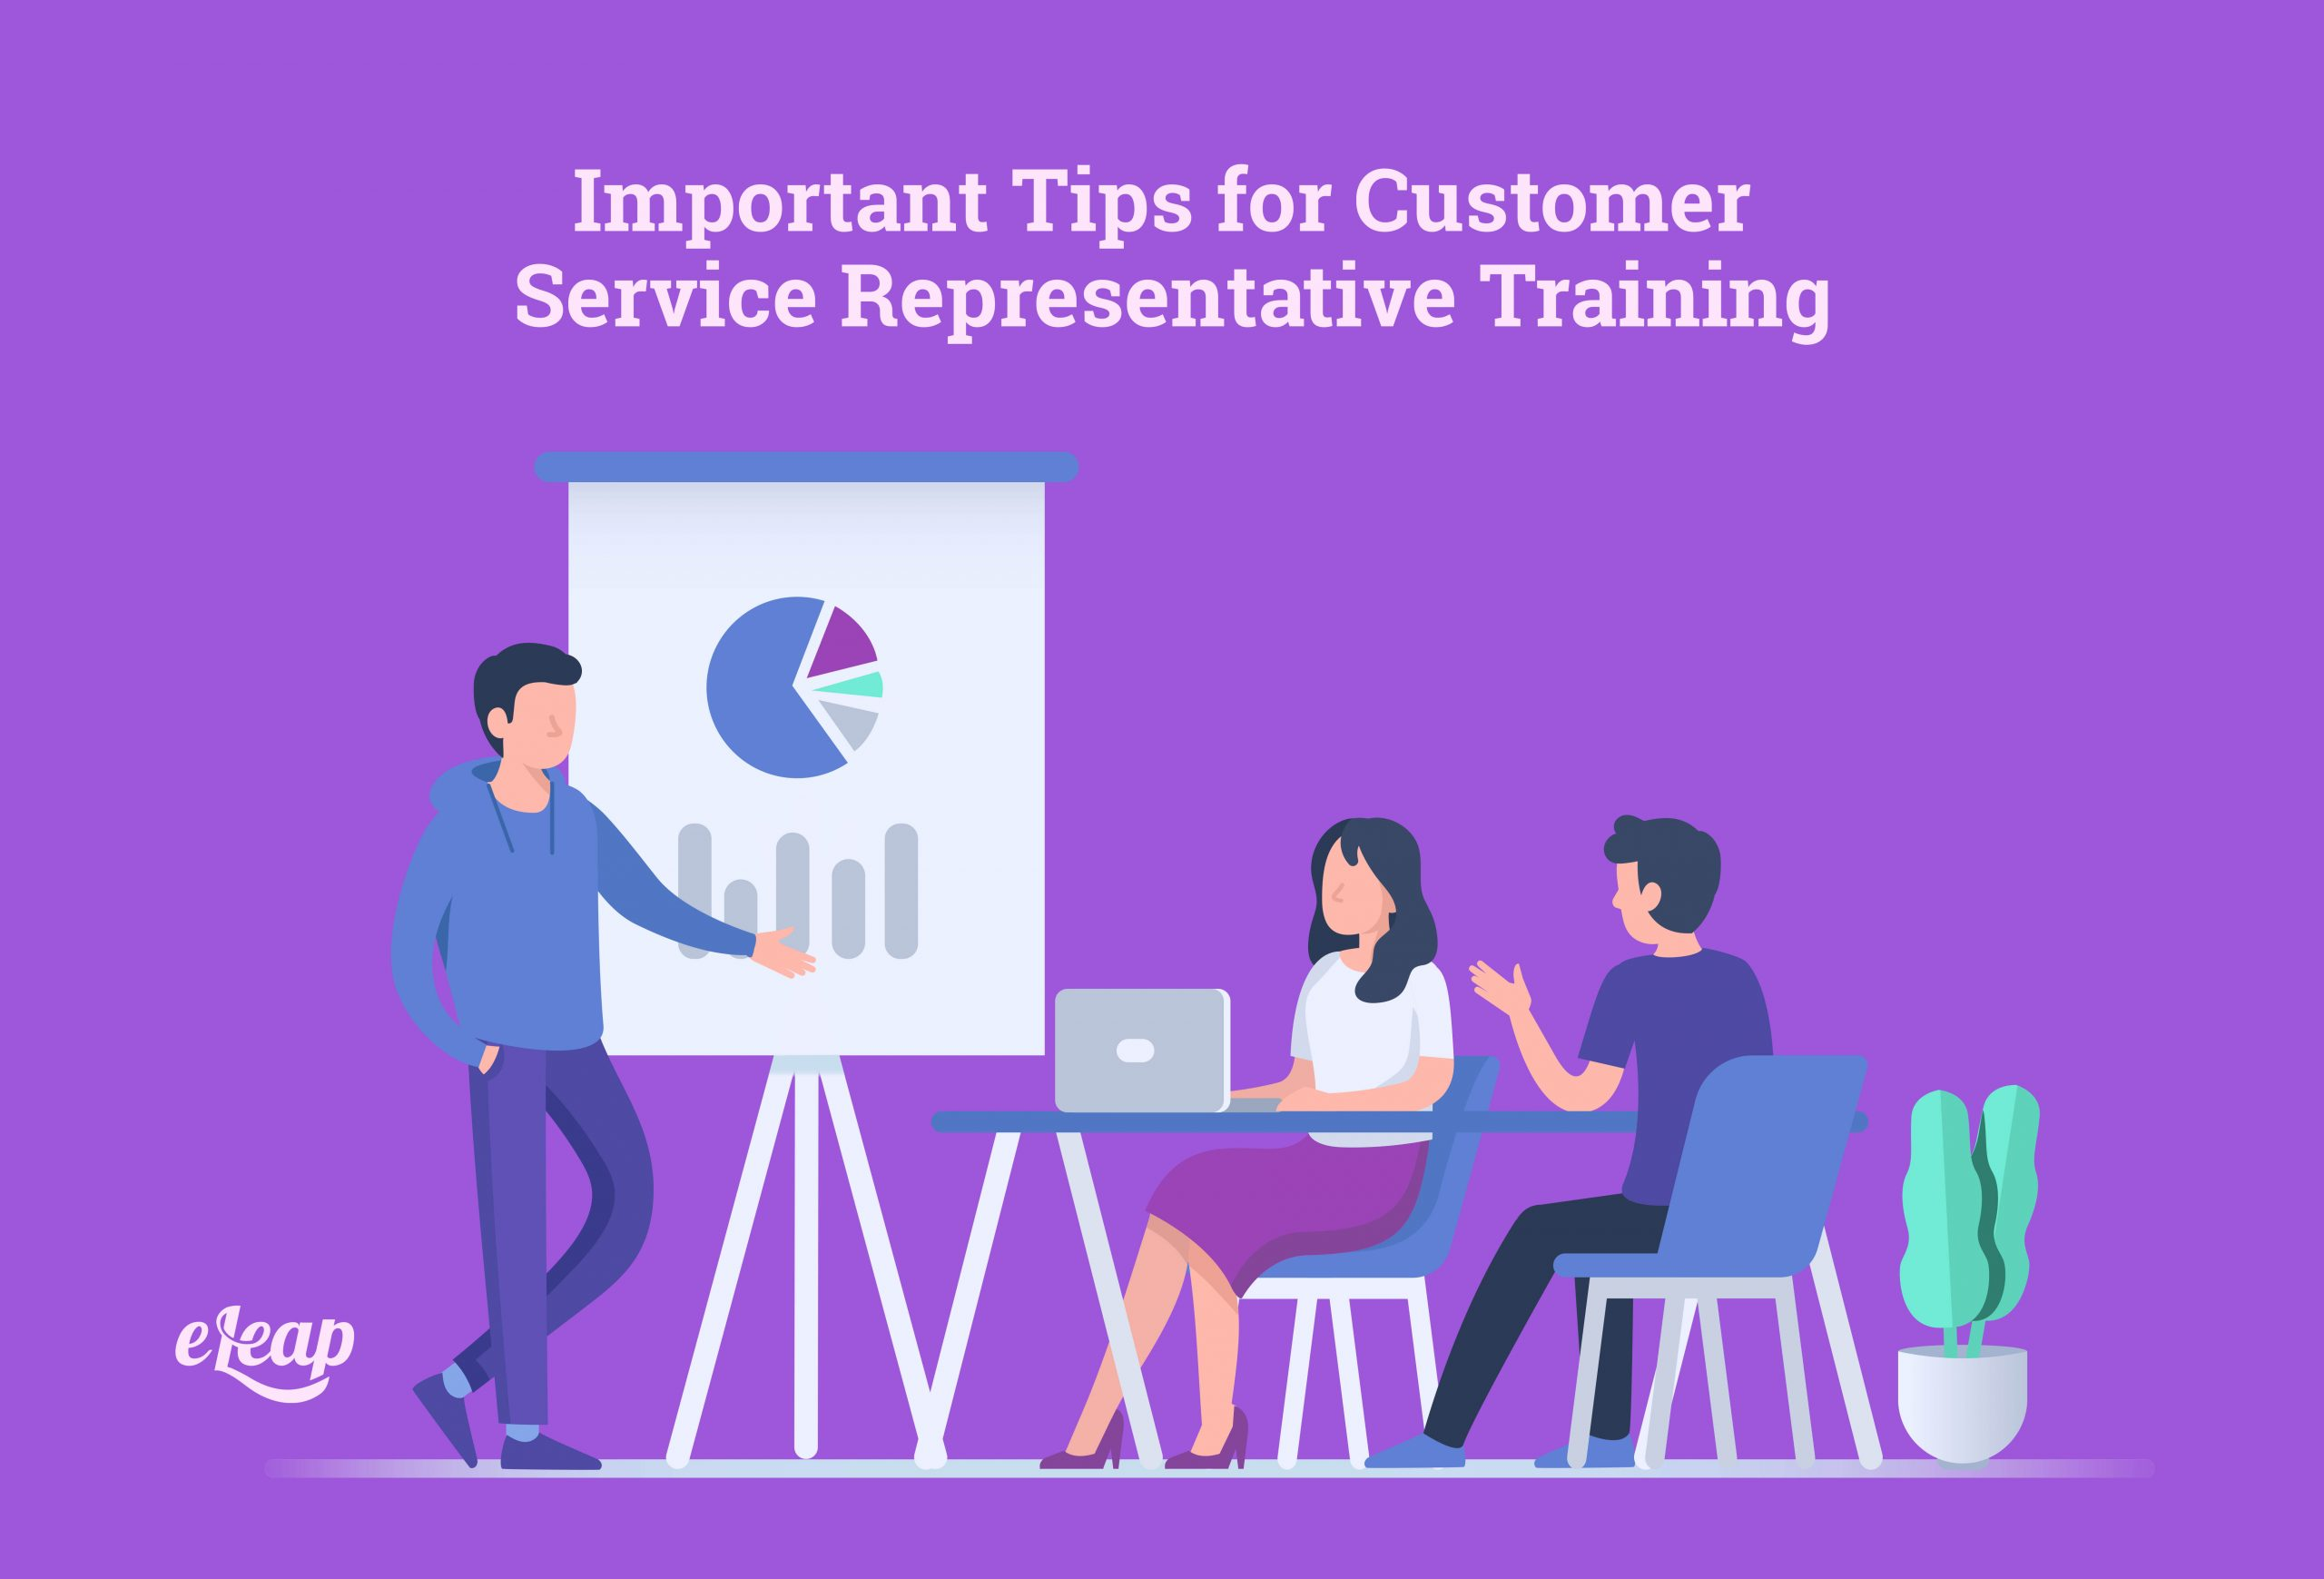 Important Tips for Customer Service Representative Training